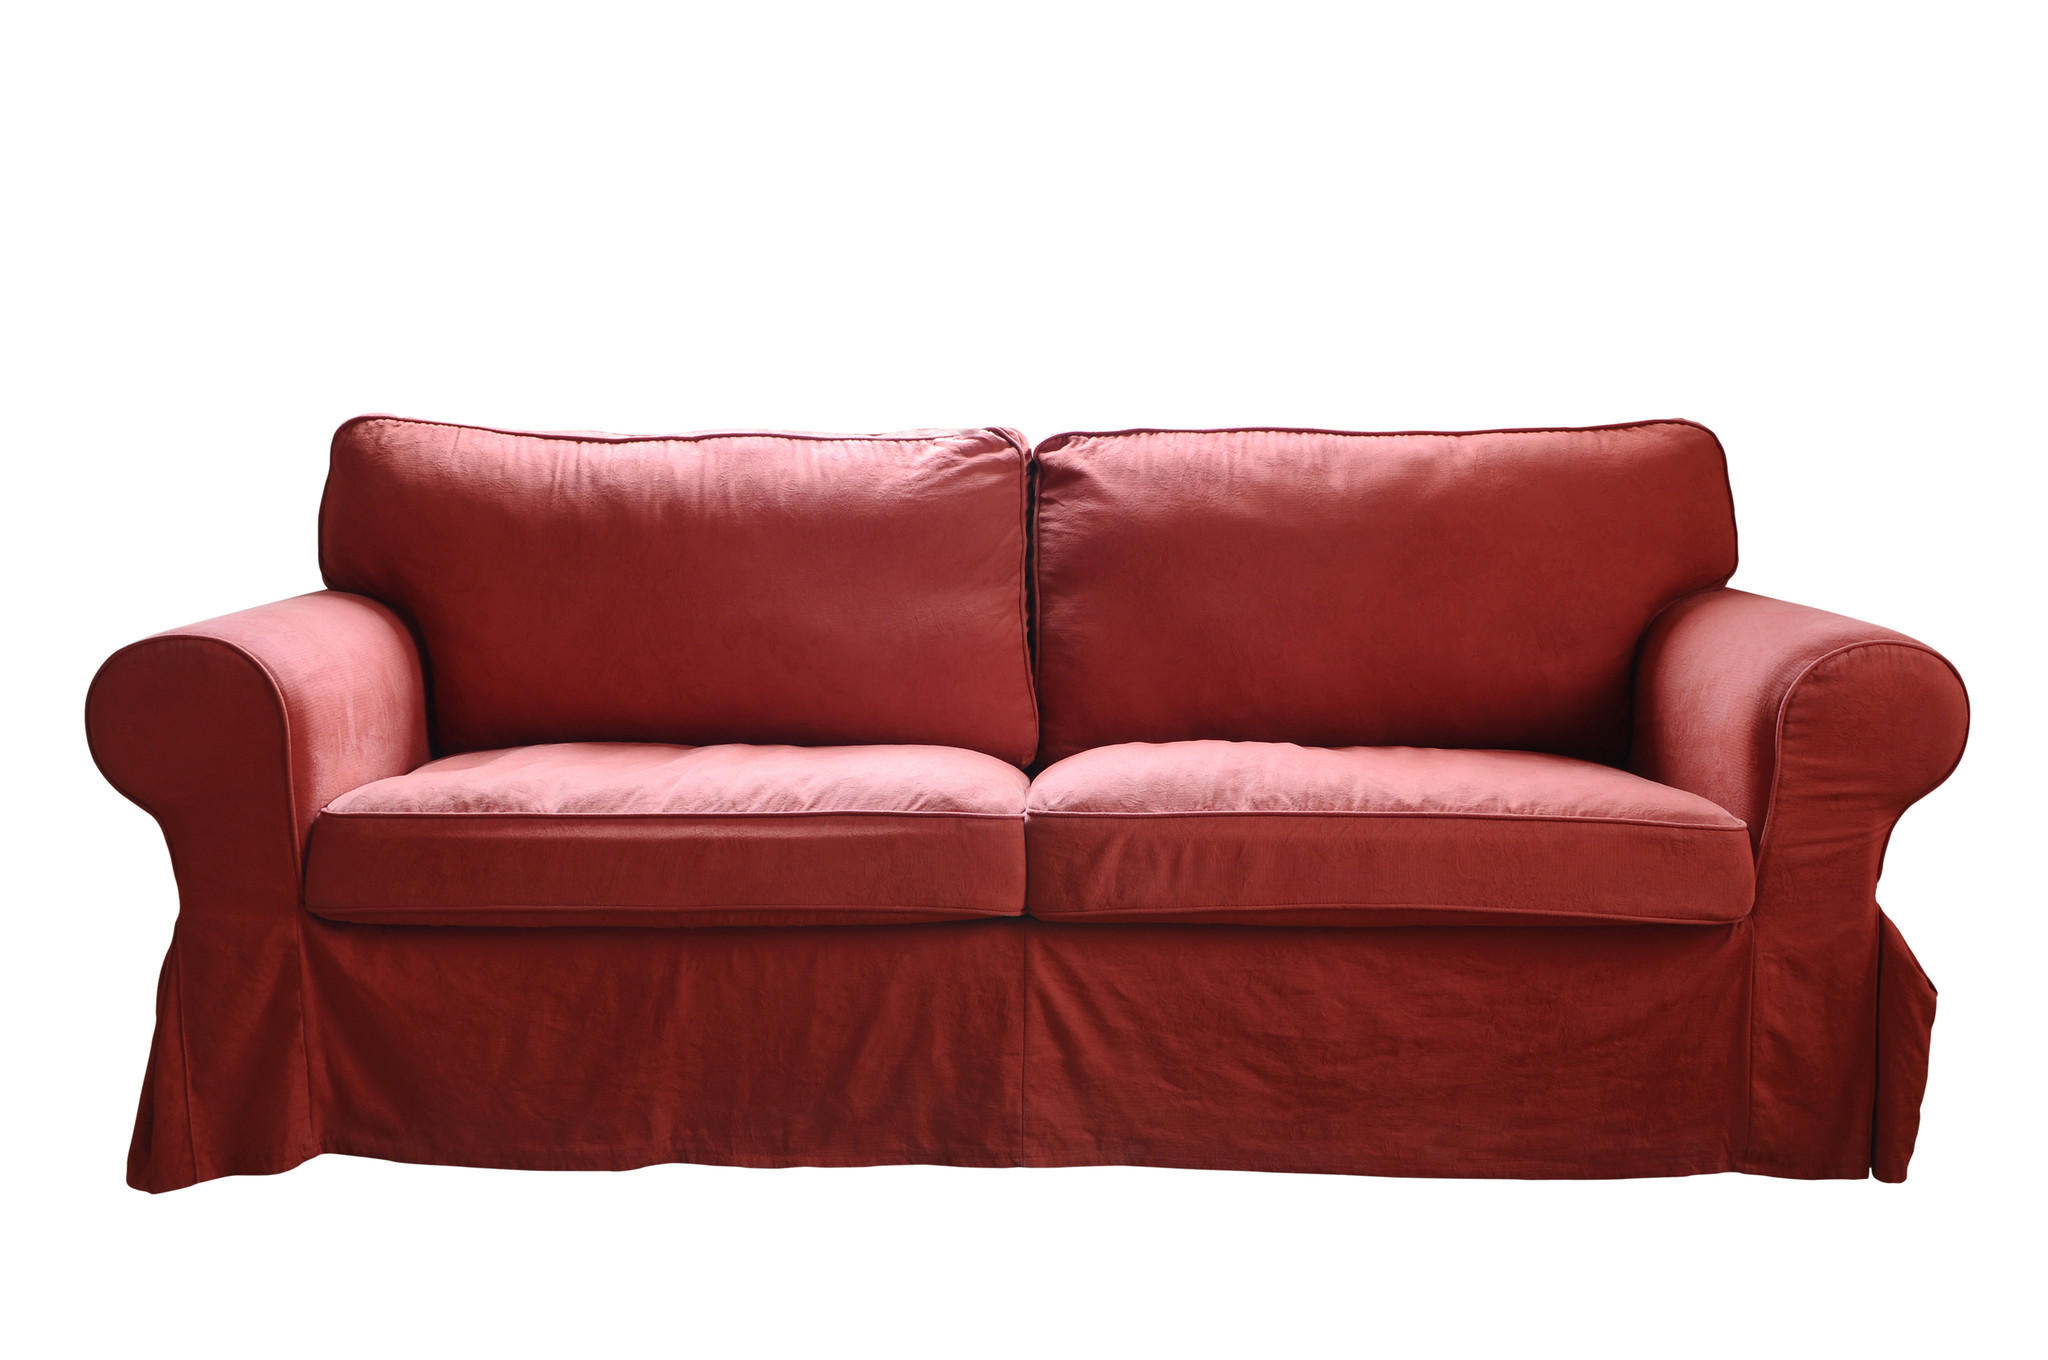 His daughter has started bringing home castoff couches in anticipation of the day she moves into her own place.